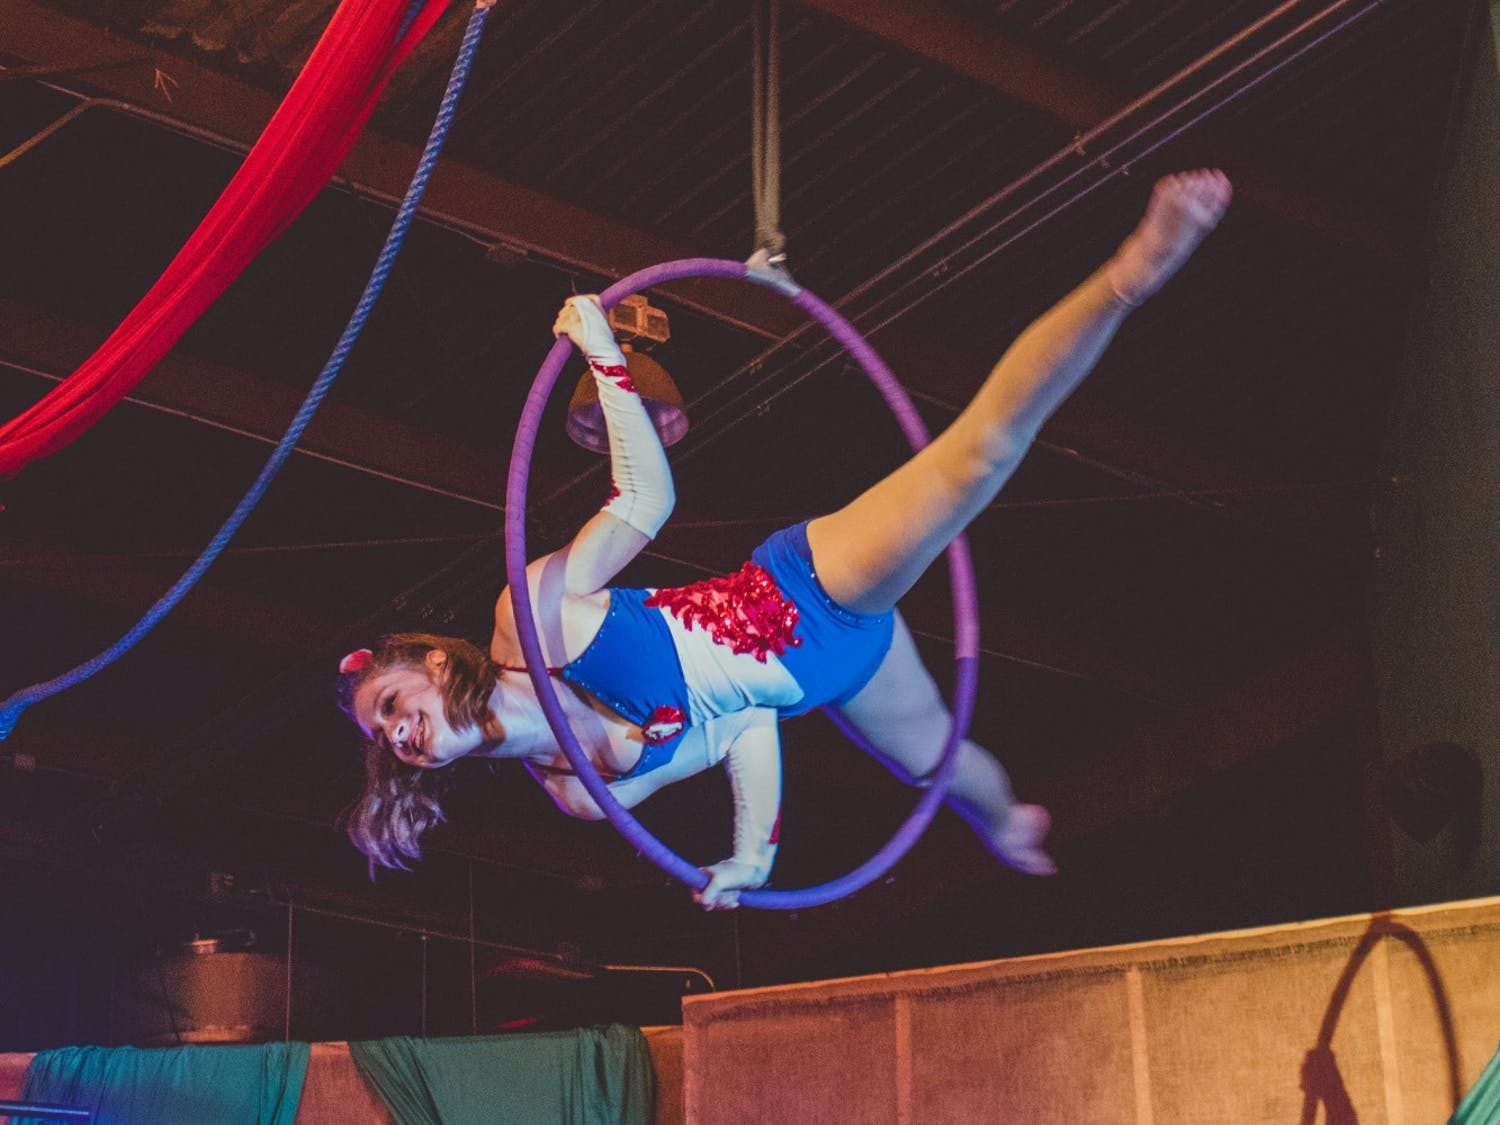 Dusty's Drive-In Circus sets acrobatic artistry to a soundtrack of ragtime covers of pop songs.